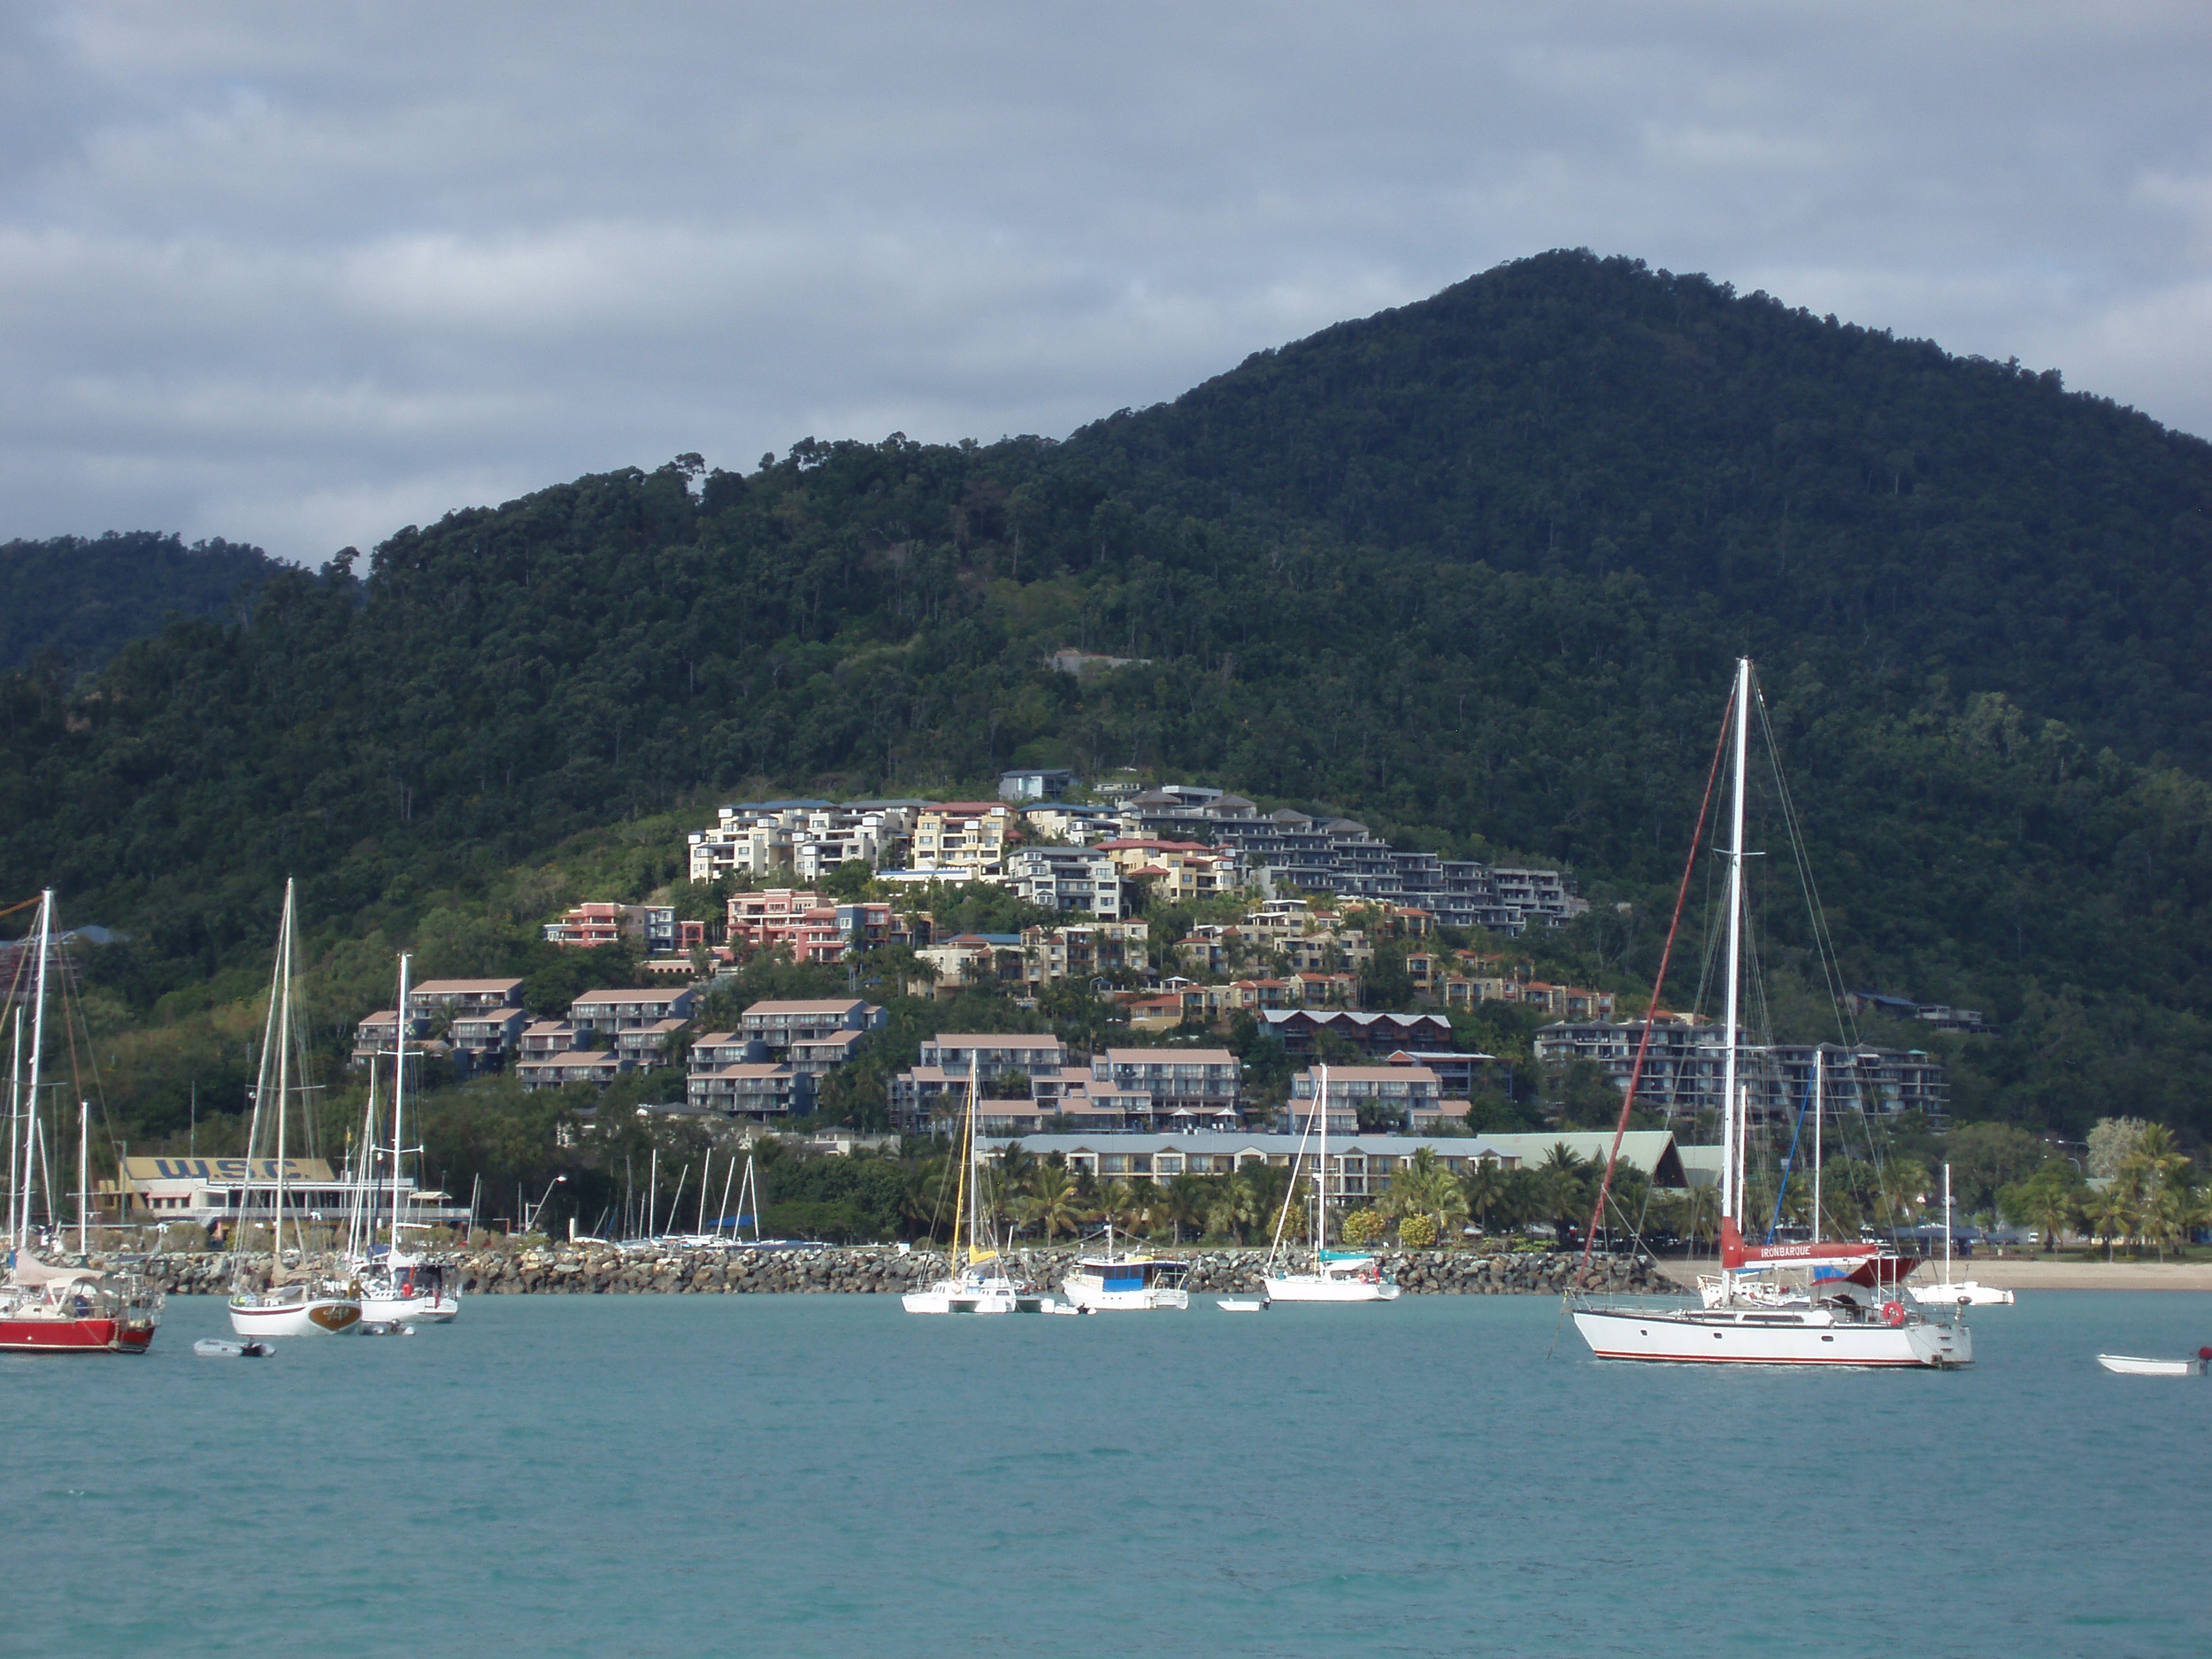 a view of airlie beach from the water